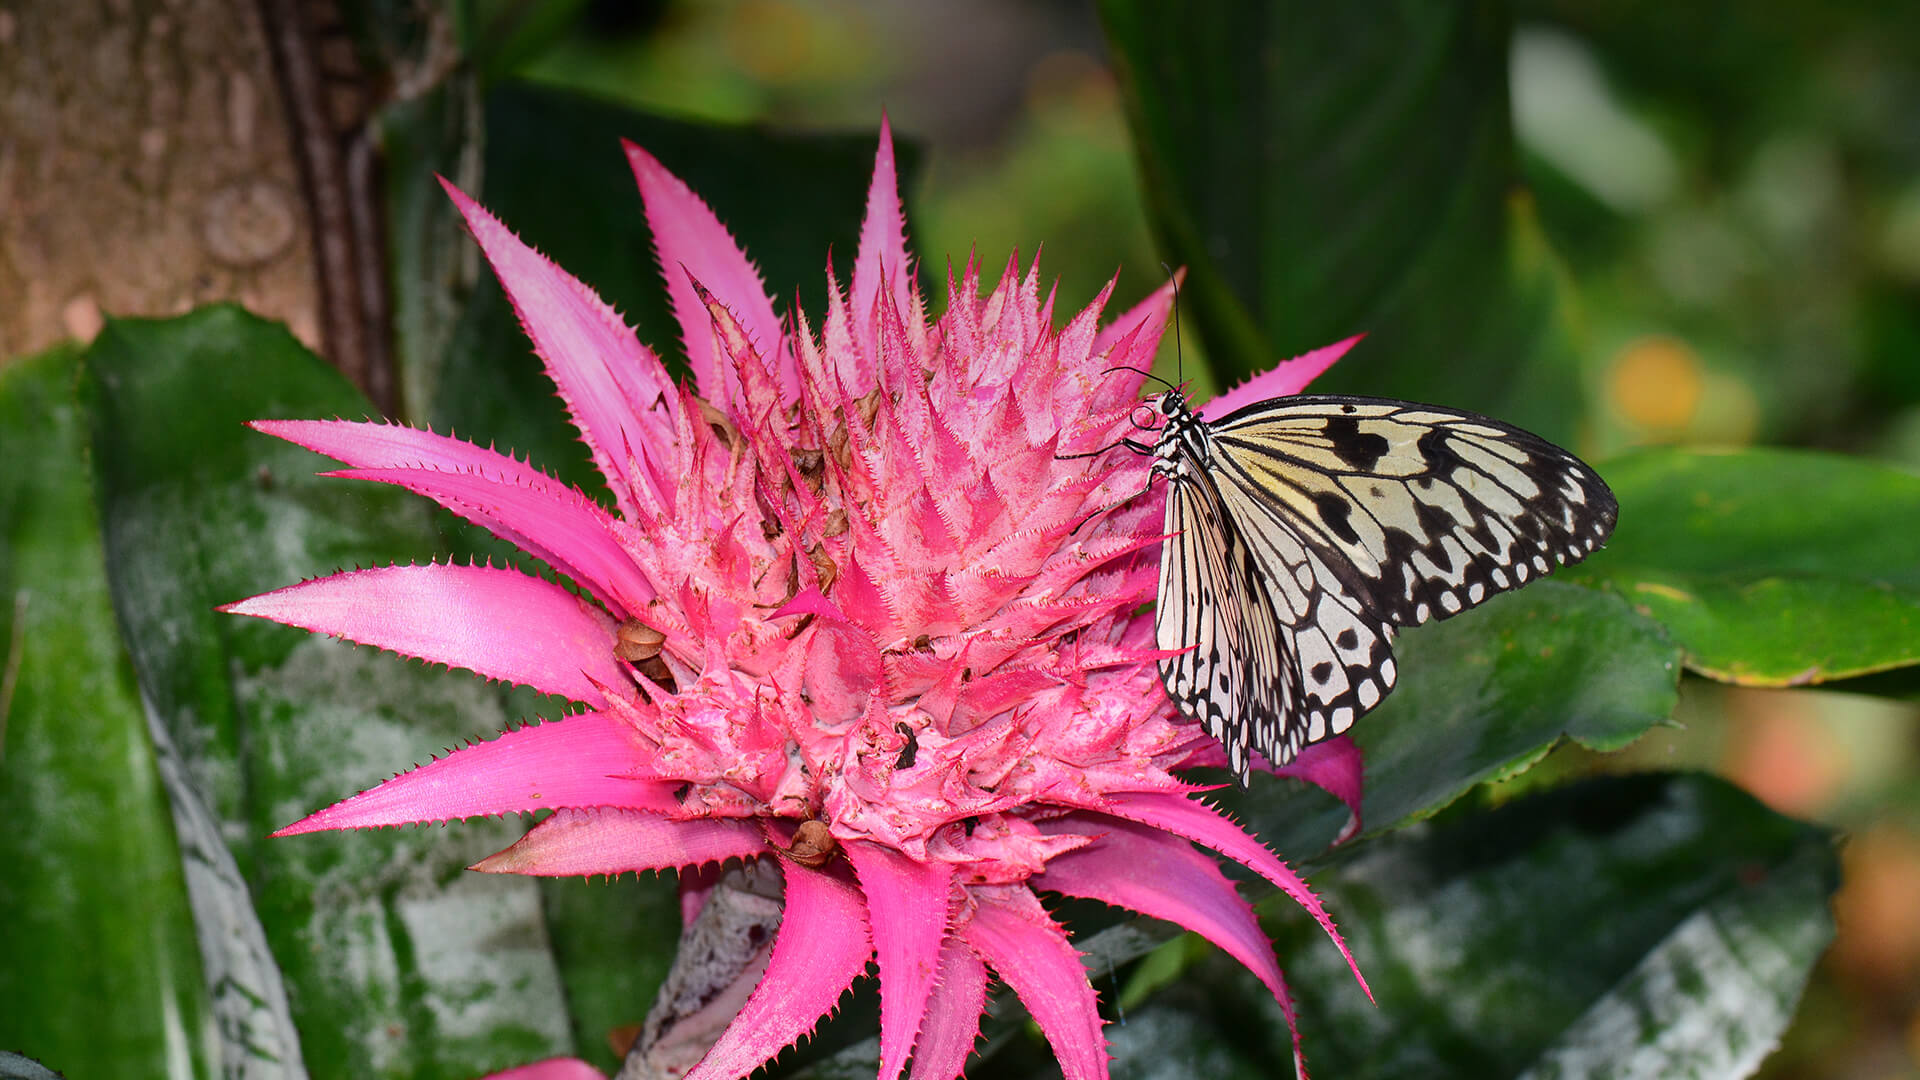 Bromeliad san diego zoo animals plants butterfly sitting on a bright pink bromeliad flower mightylinksfo